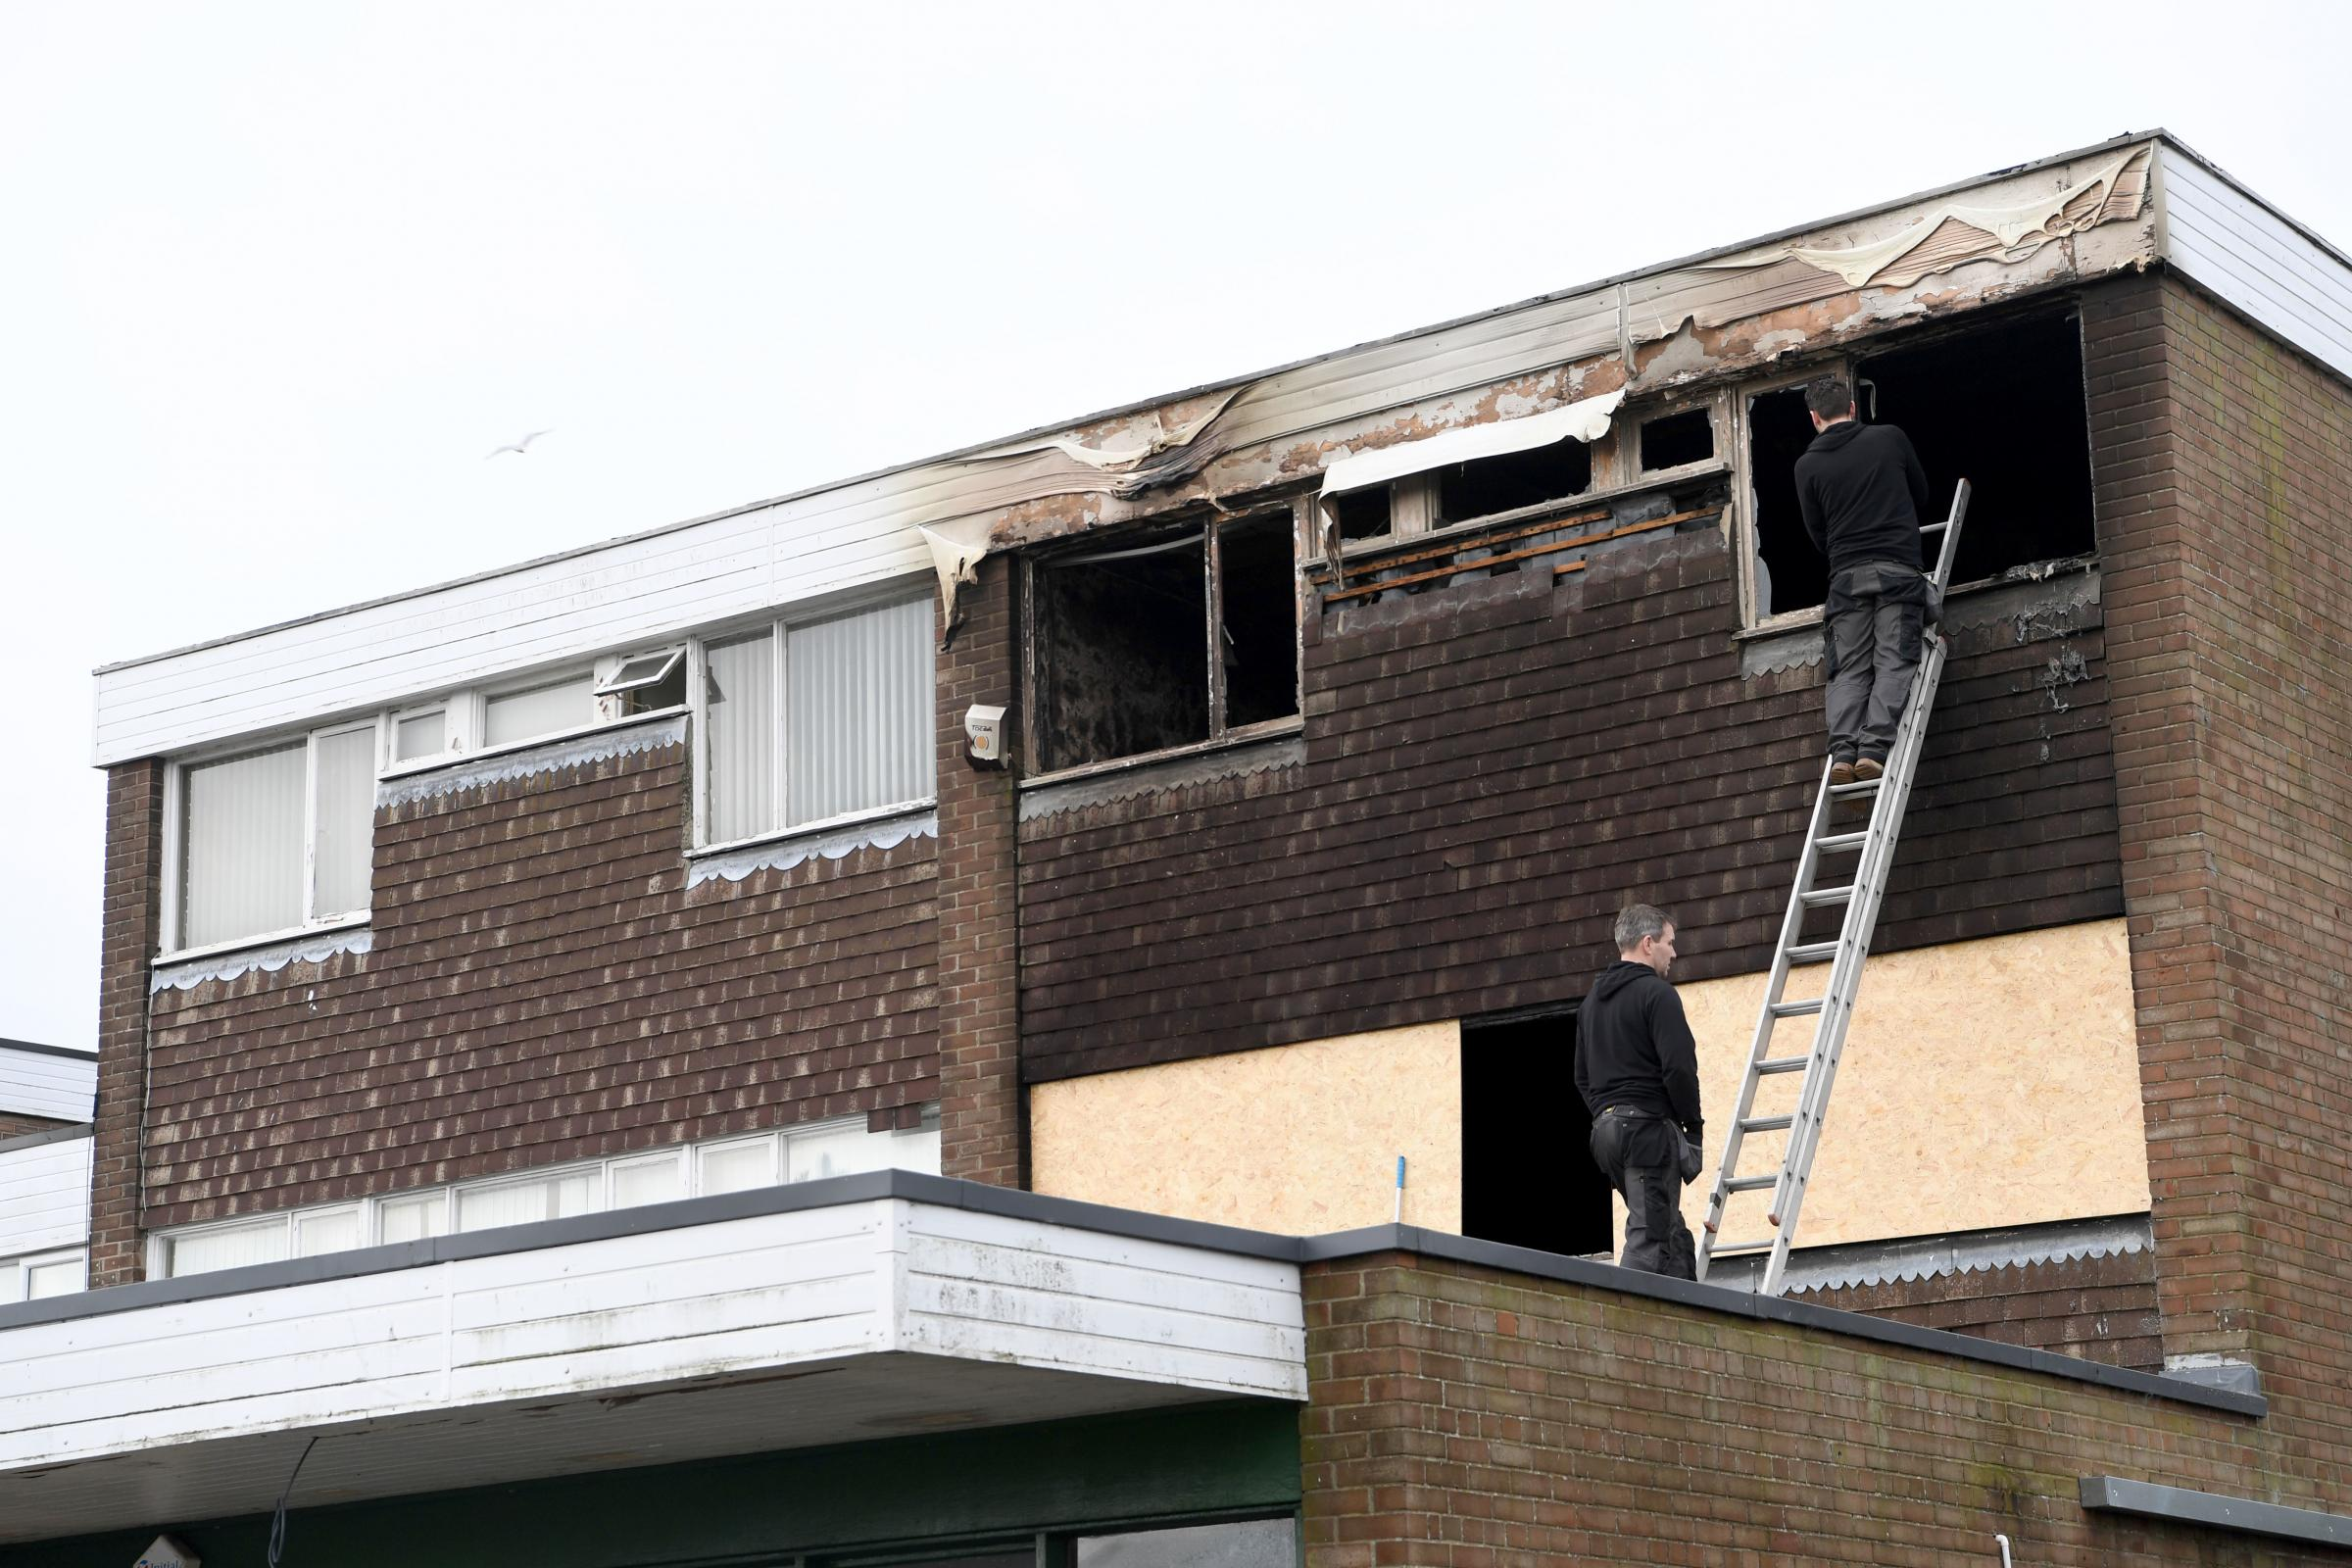 Work is carried out to board up the burnt-out flat at Broadway, in Darras Hall.     Photo: KATE BUCKINGHAM